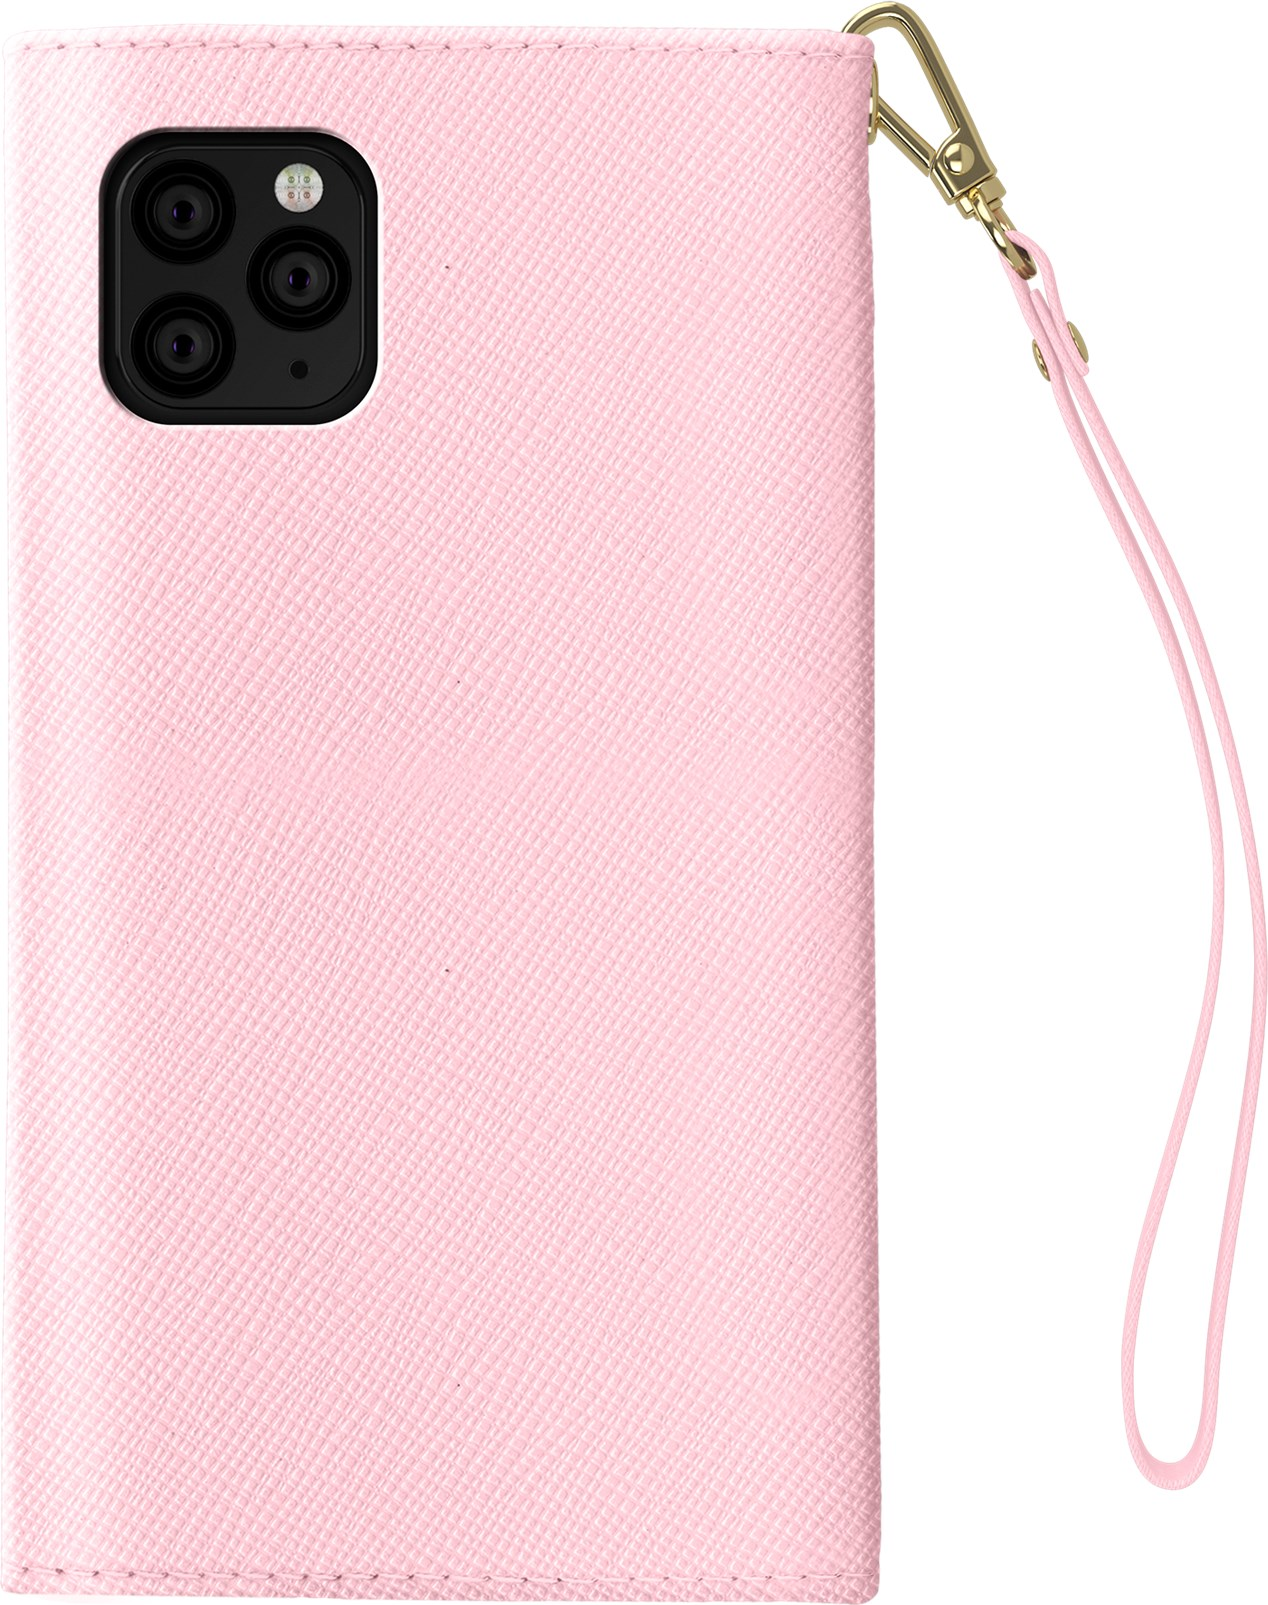 iDeal of Sweden Ideal Mayfair Clutch Iphone 11 Pro Max Pink